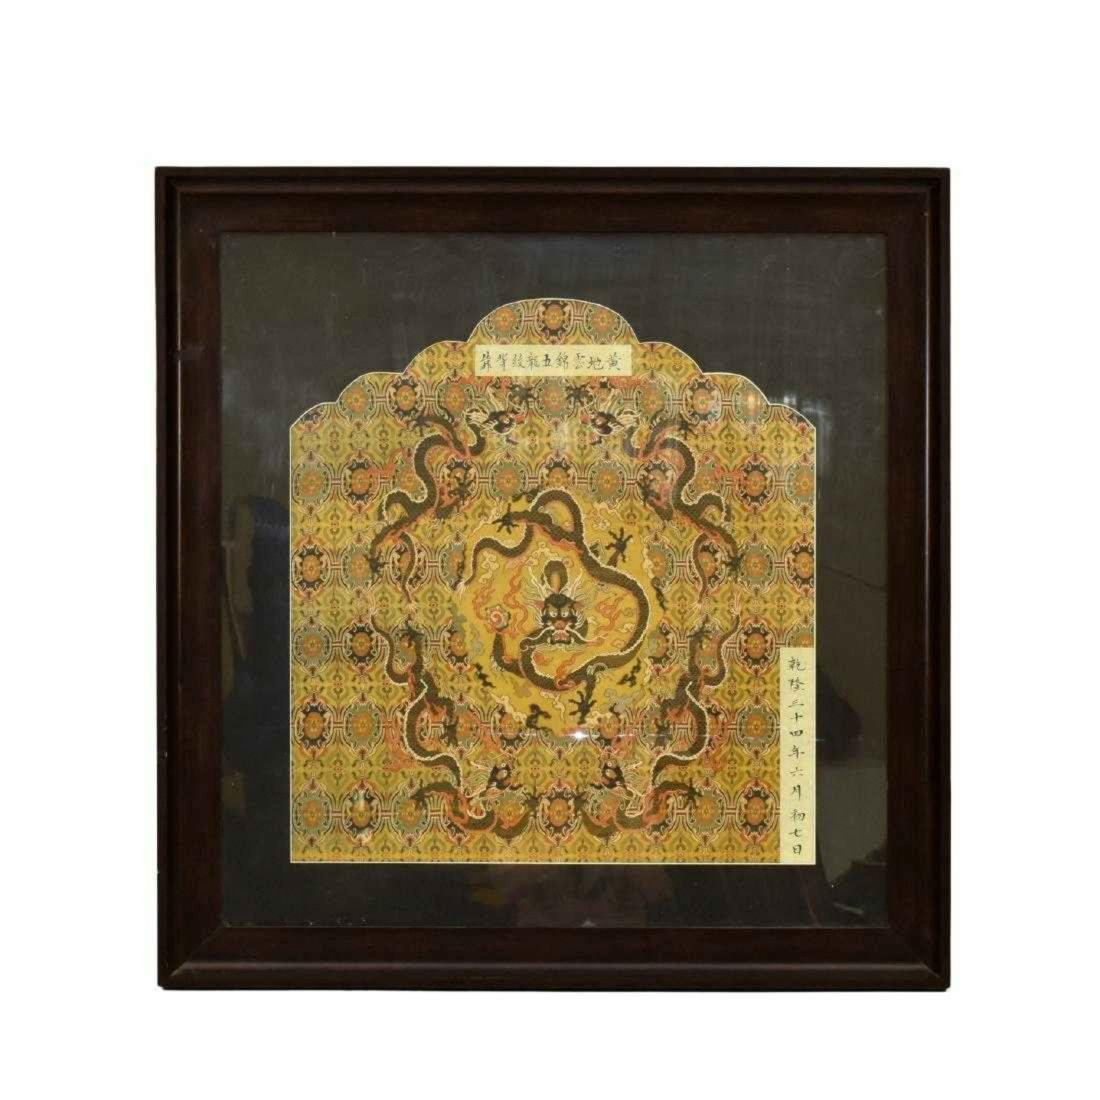 19TH C FRAMED DRAGON EMBROIDERY SILK PANEL